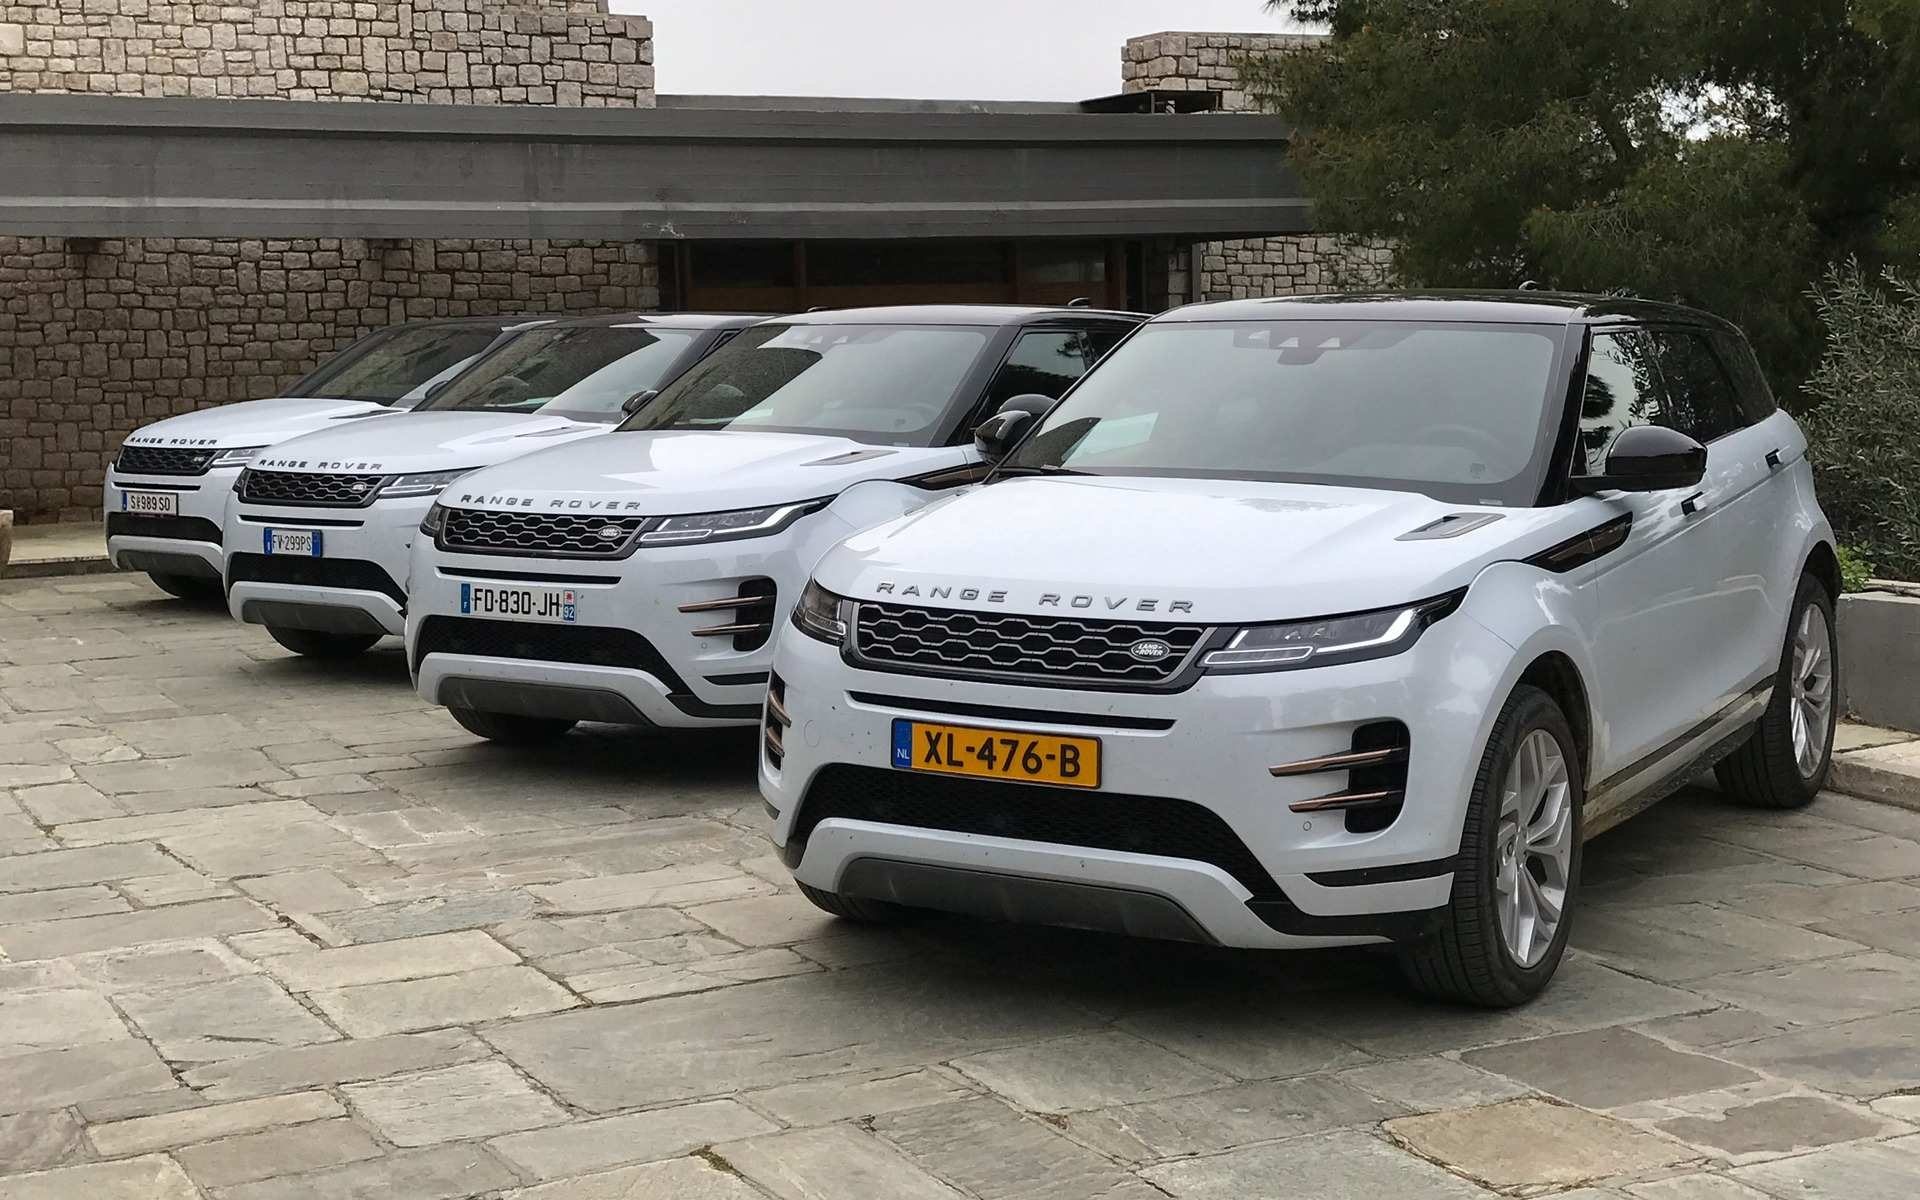 64 All New 2020 Range Rover Evoque Xl Specs